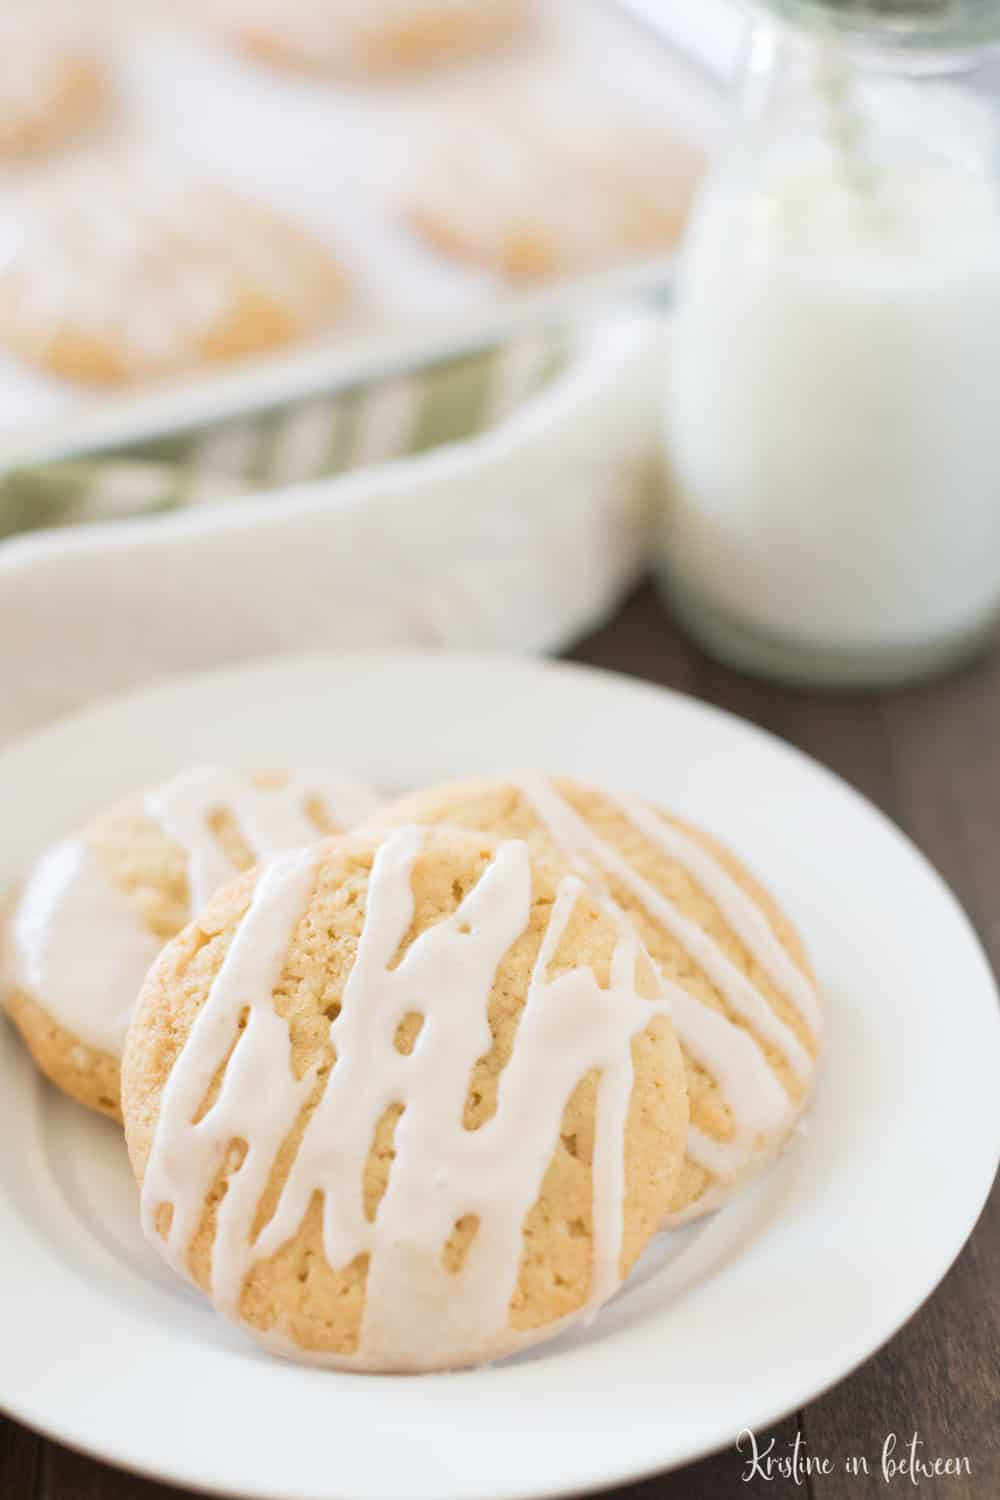 You'll love these thin and chewy maple sugar cookies! They're soft, yet have crispy edges and are covered with a light maple glaze.